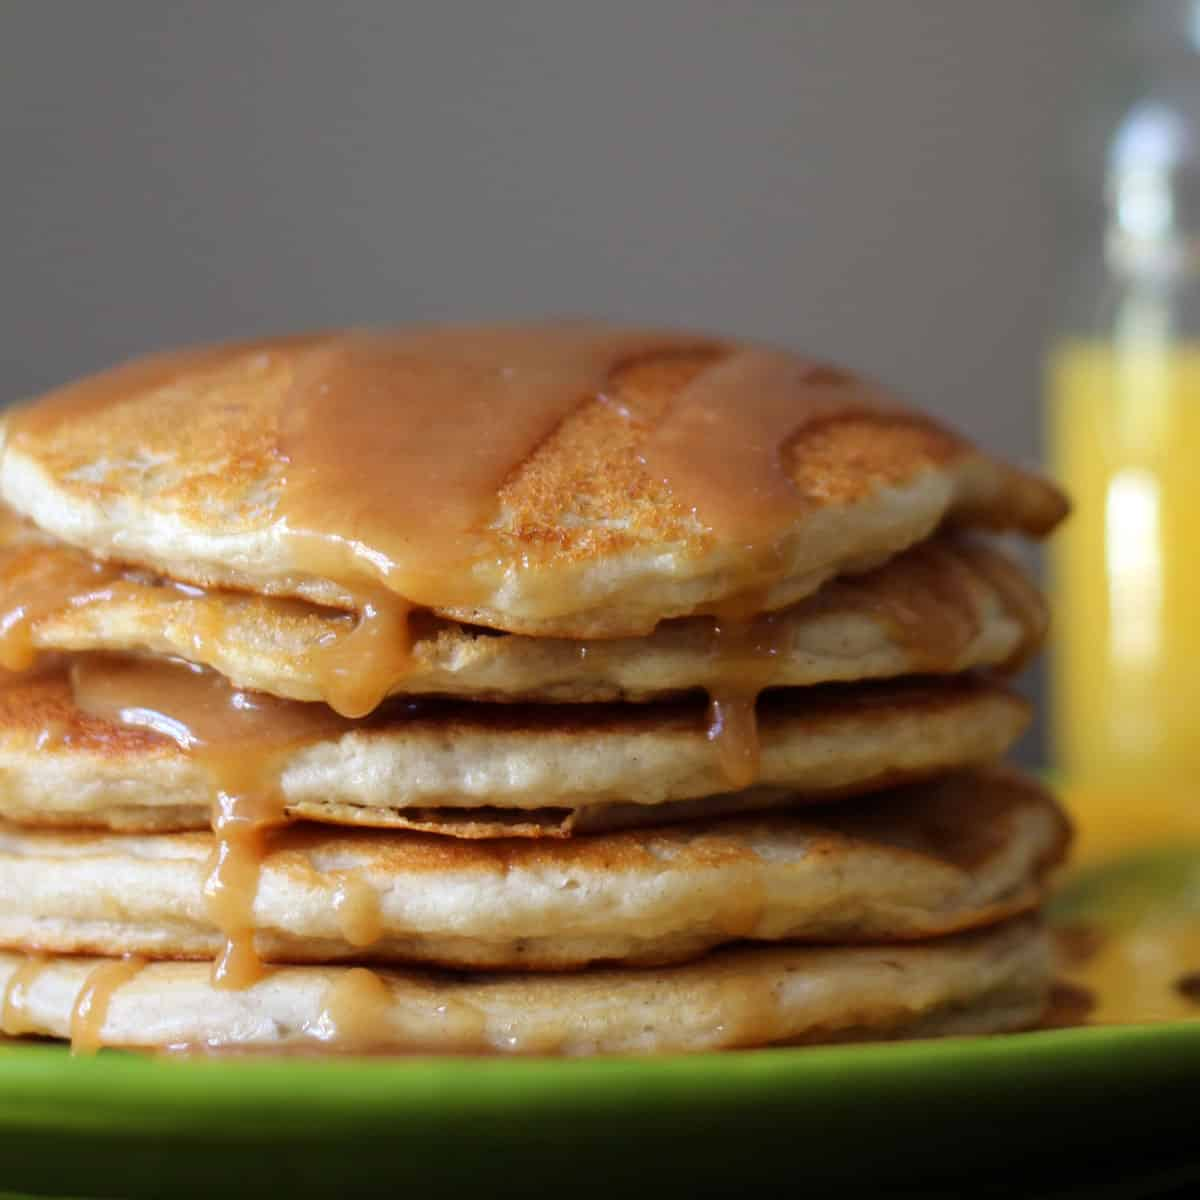 Stack of banana pancakes with syrup drizzled on top.